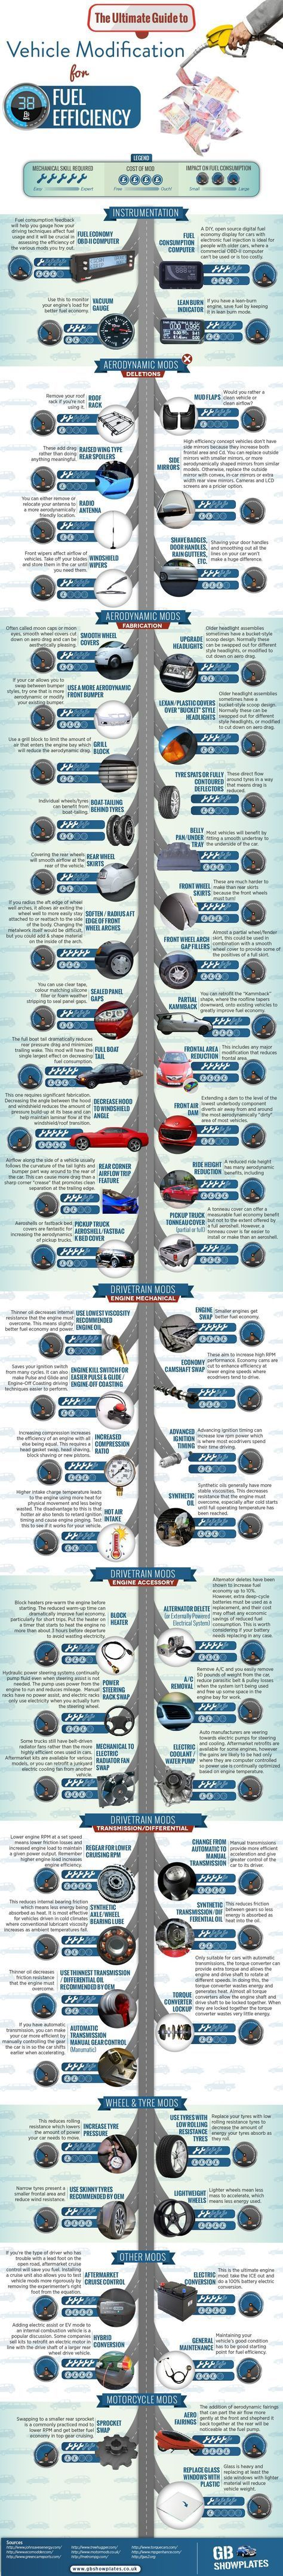 Vehicle modification for fuel efficiency infographic transportation cars